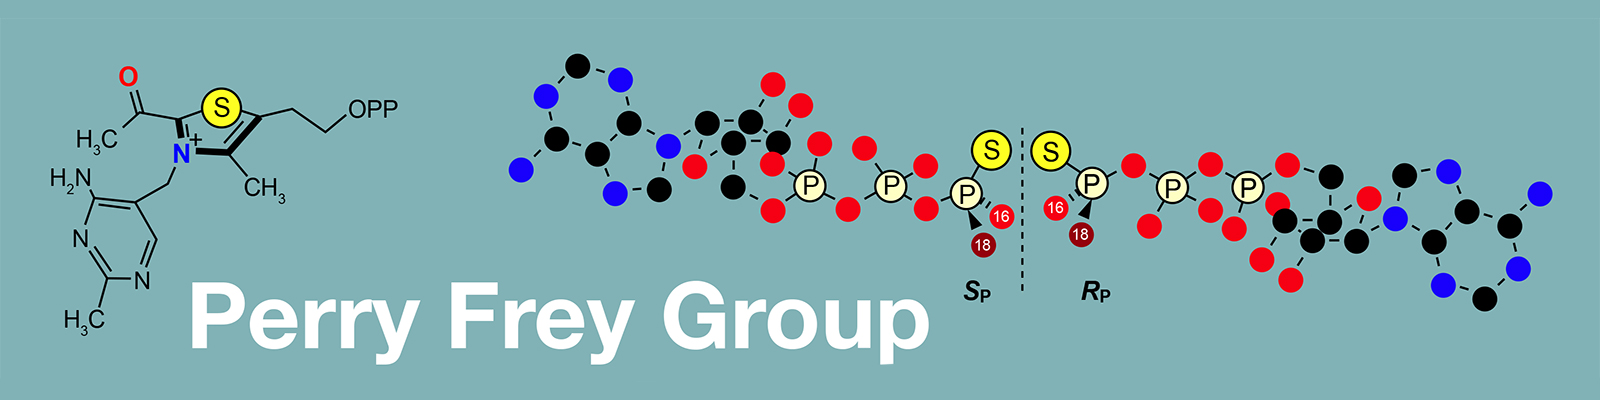 Perry Frey header illustration of compounds